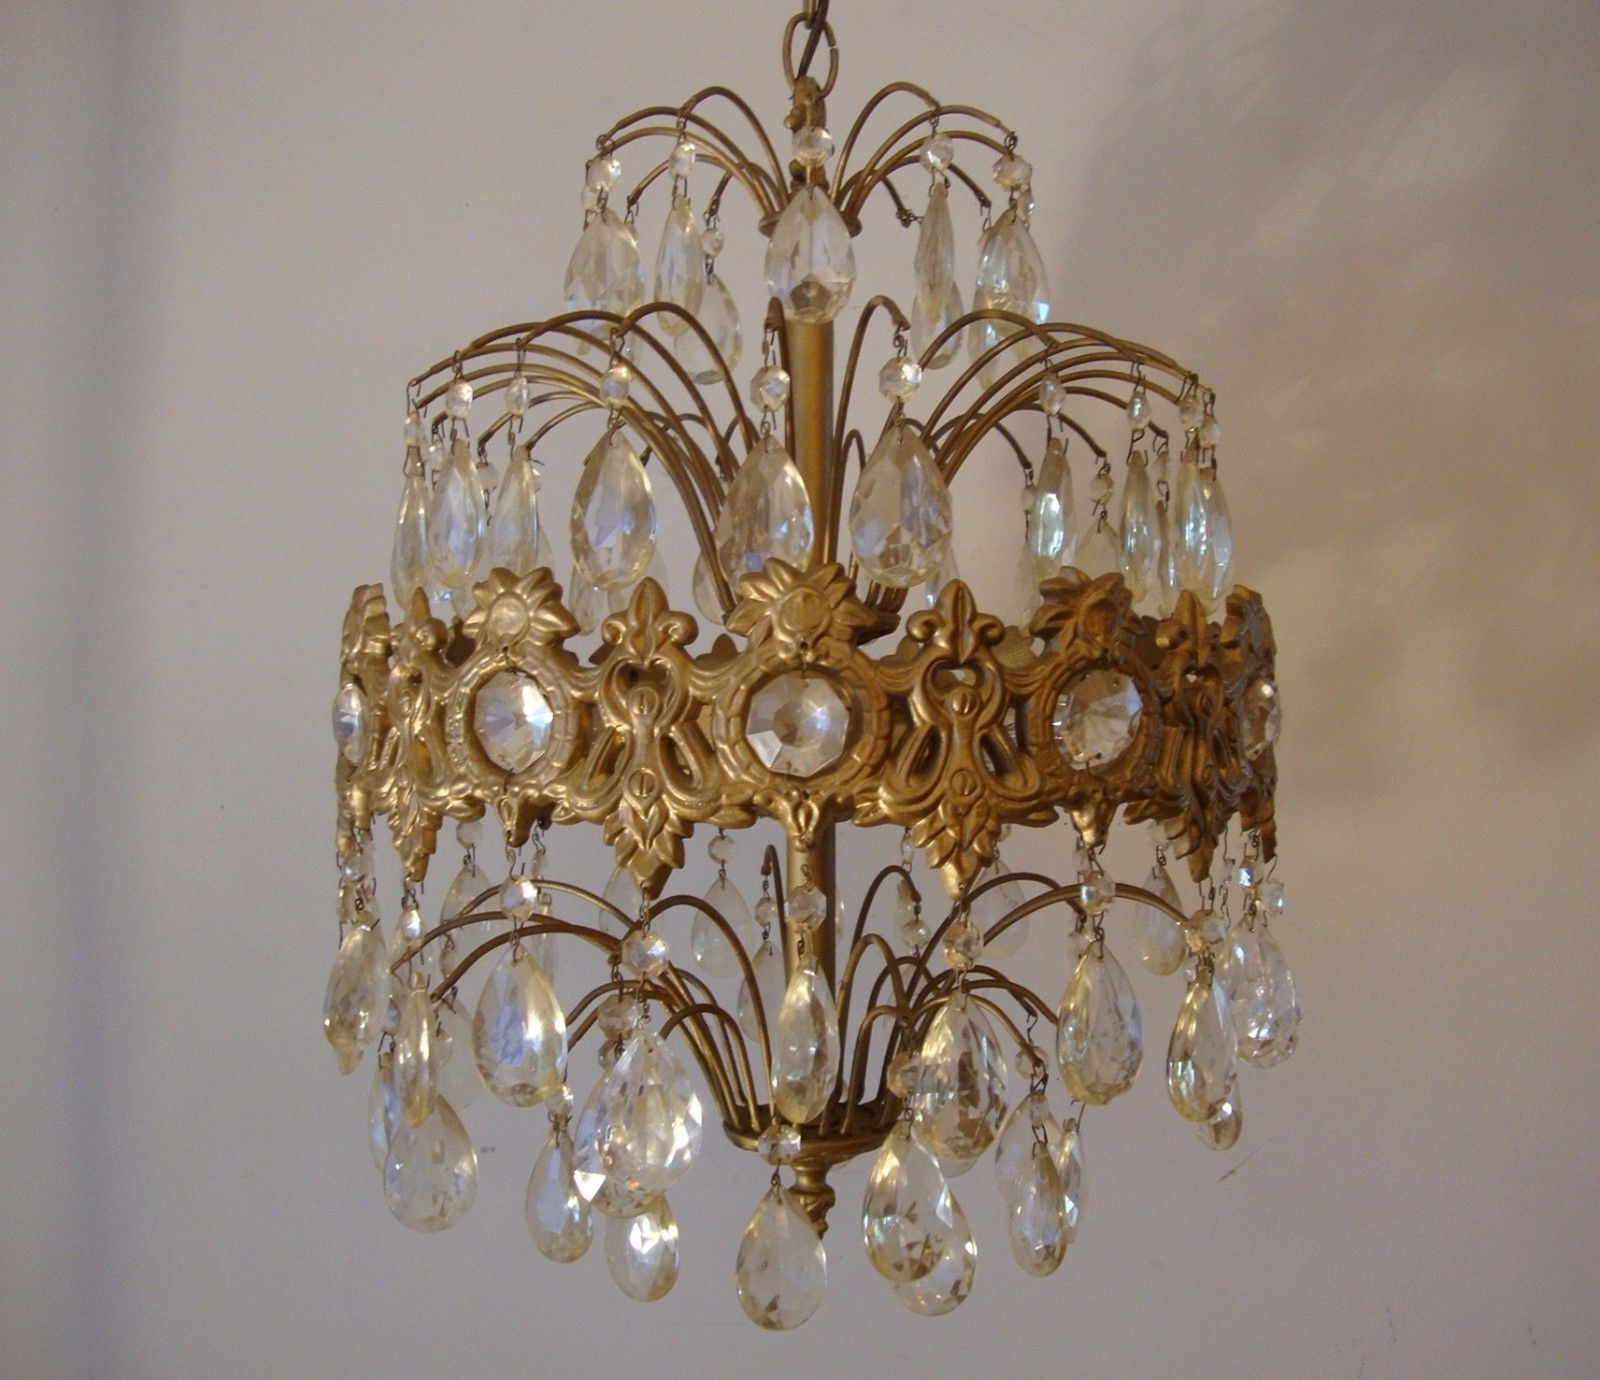 Favorite Waterfall Chandeliers With Regard To Vintage Crystal Prism Waterfall Chandelier – 6 Tier 6 Lights (View 5 of 20)